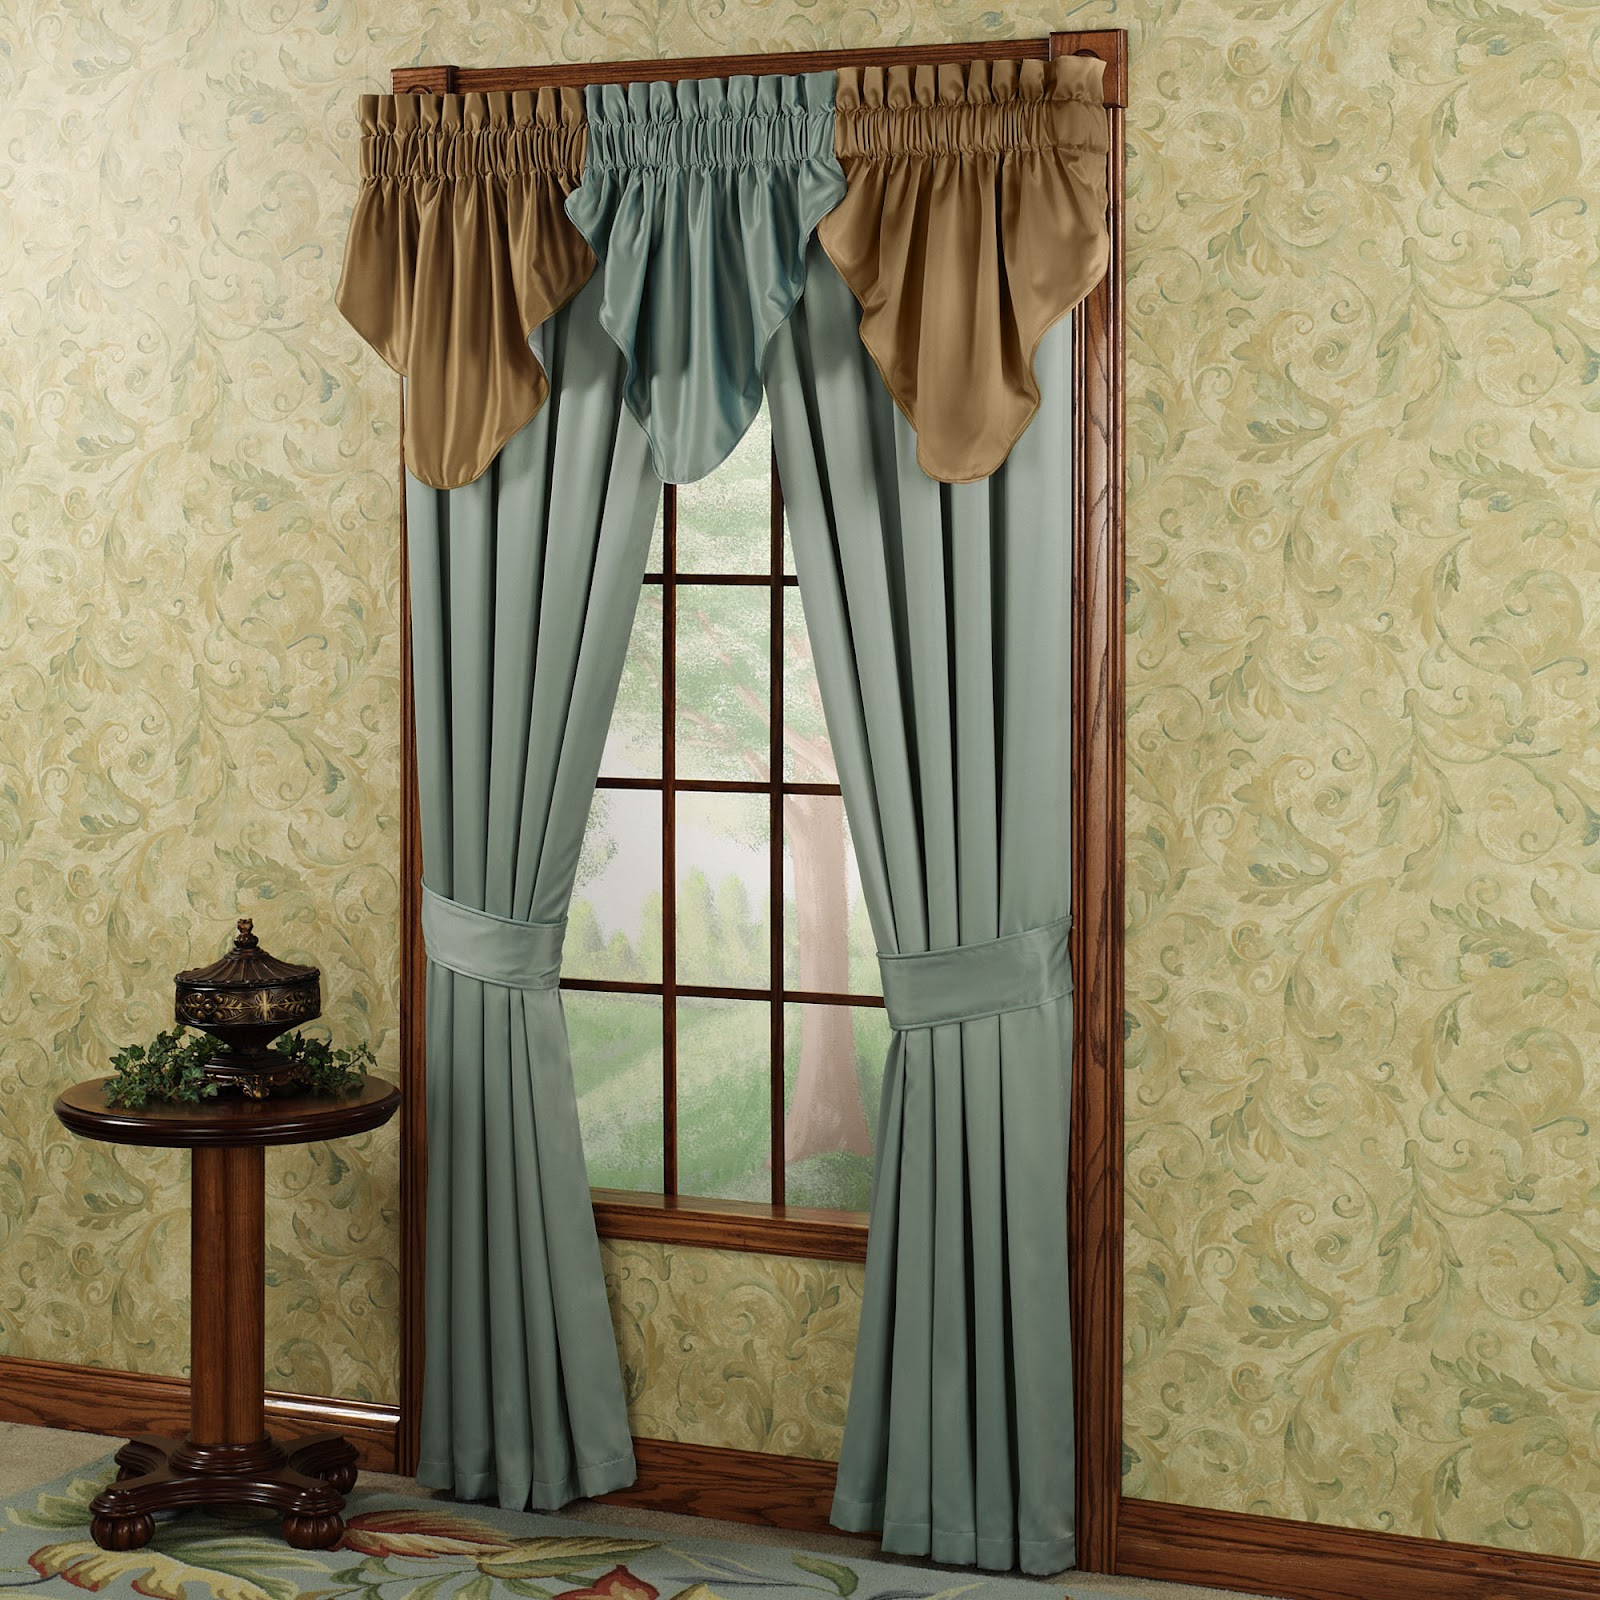 New home designs latest home curtain designs ideas for Home drapes and curtains